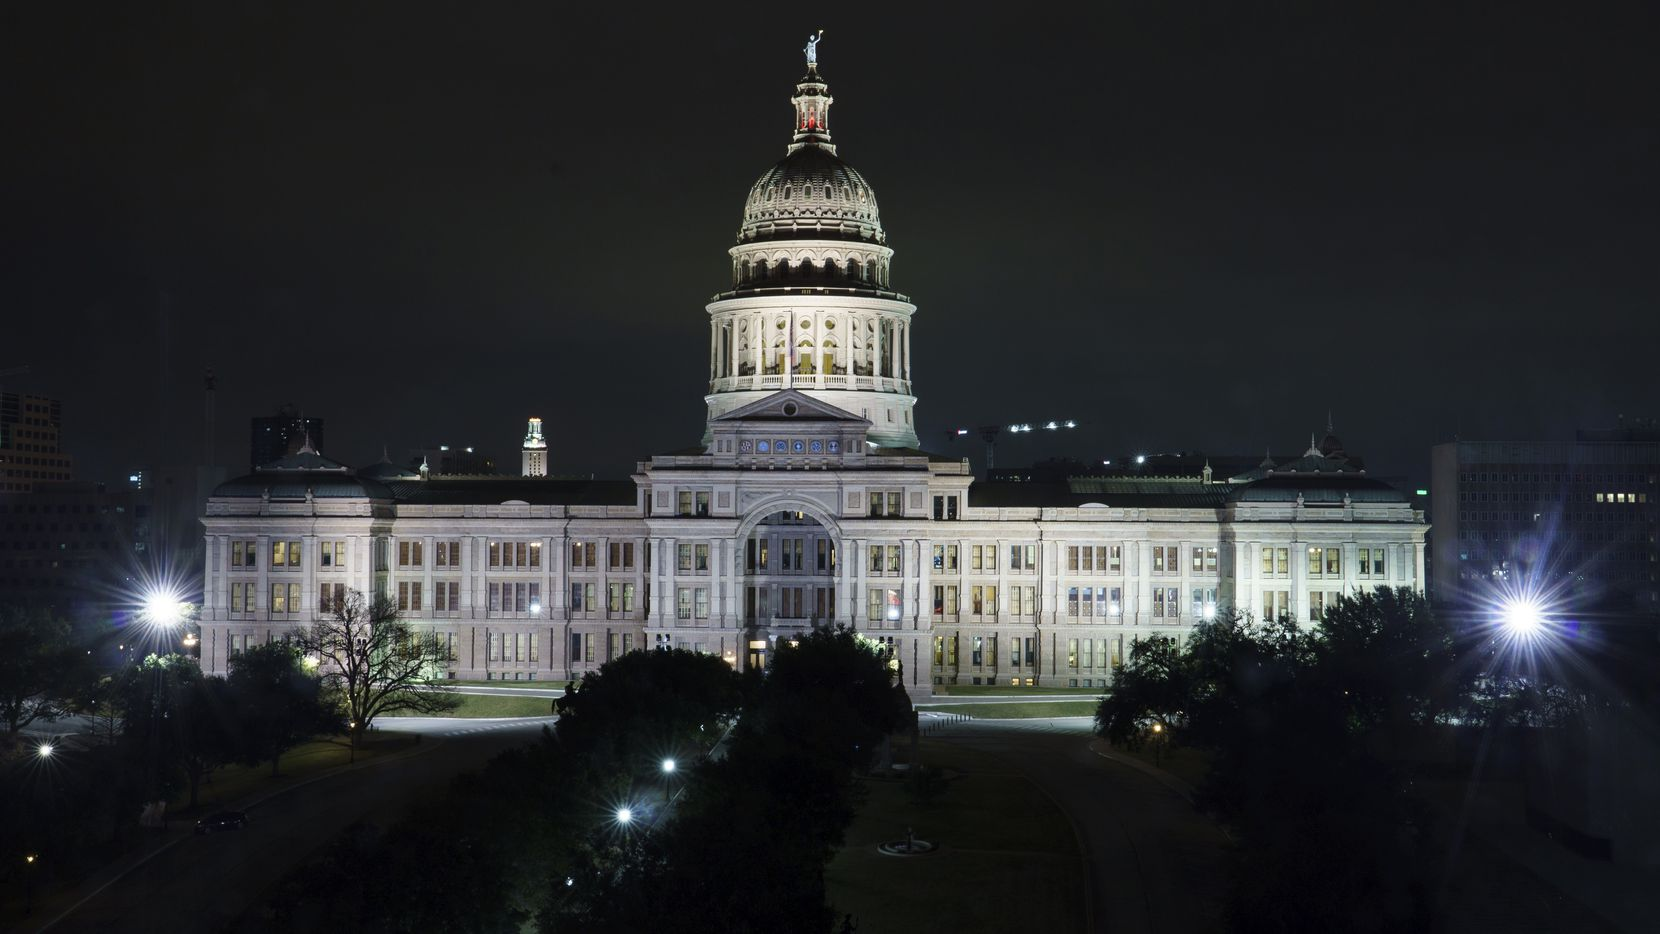 Nighttime view of the Texas State Capitol building on Thursday, Jan. 30, 2020.